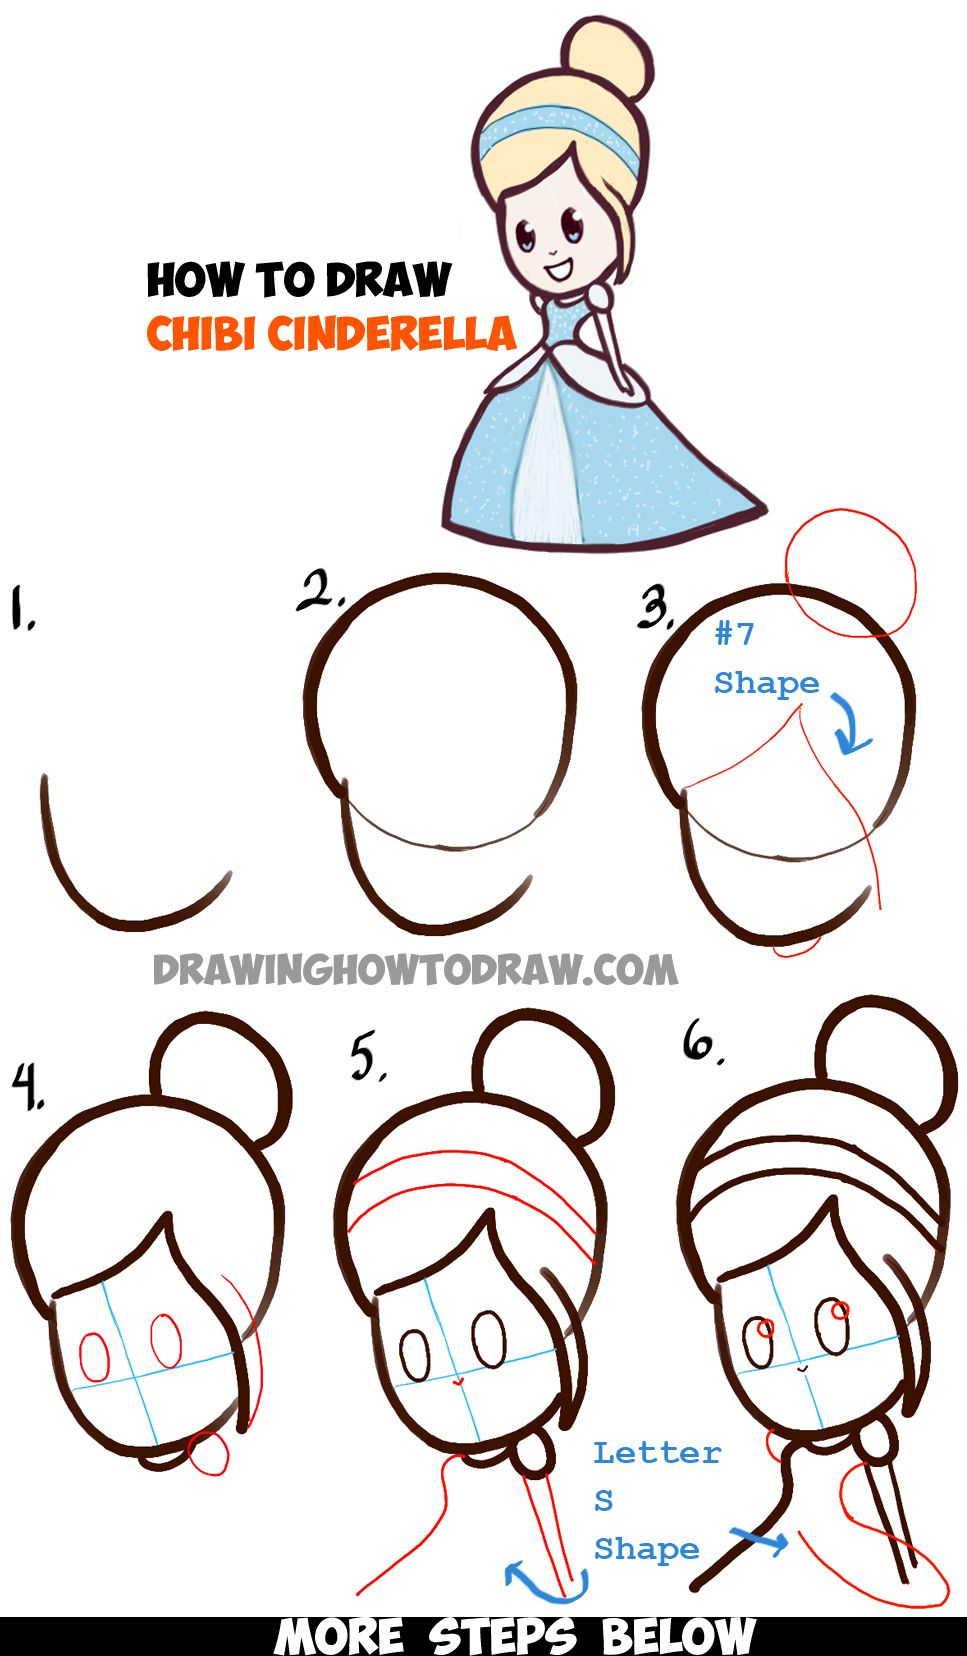 How To Draw Cute Baby Chibi Cinderella Easy Step By Step Drawing Tutorial How To Draw Step By Step Drawing Tutorials Cute Drawings Cartoon Drawings Drawing Tutorial